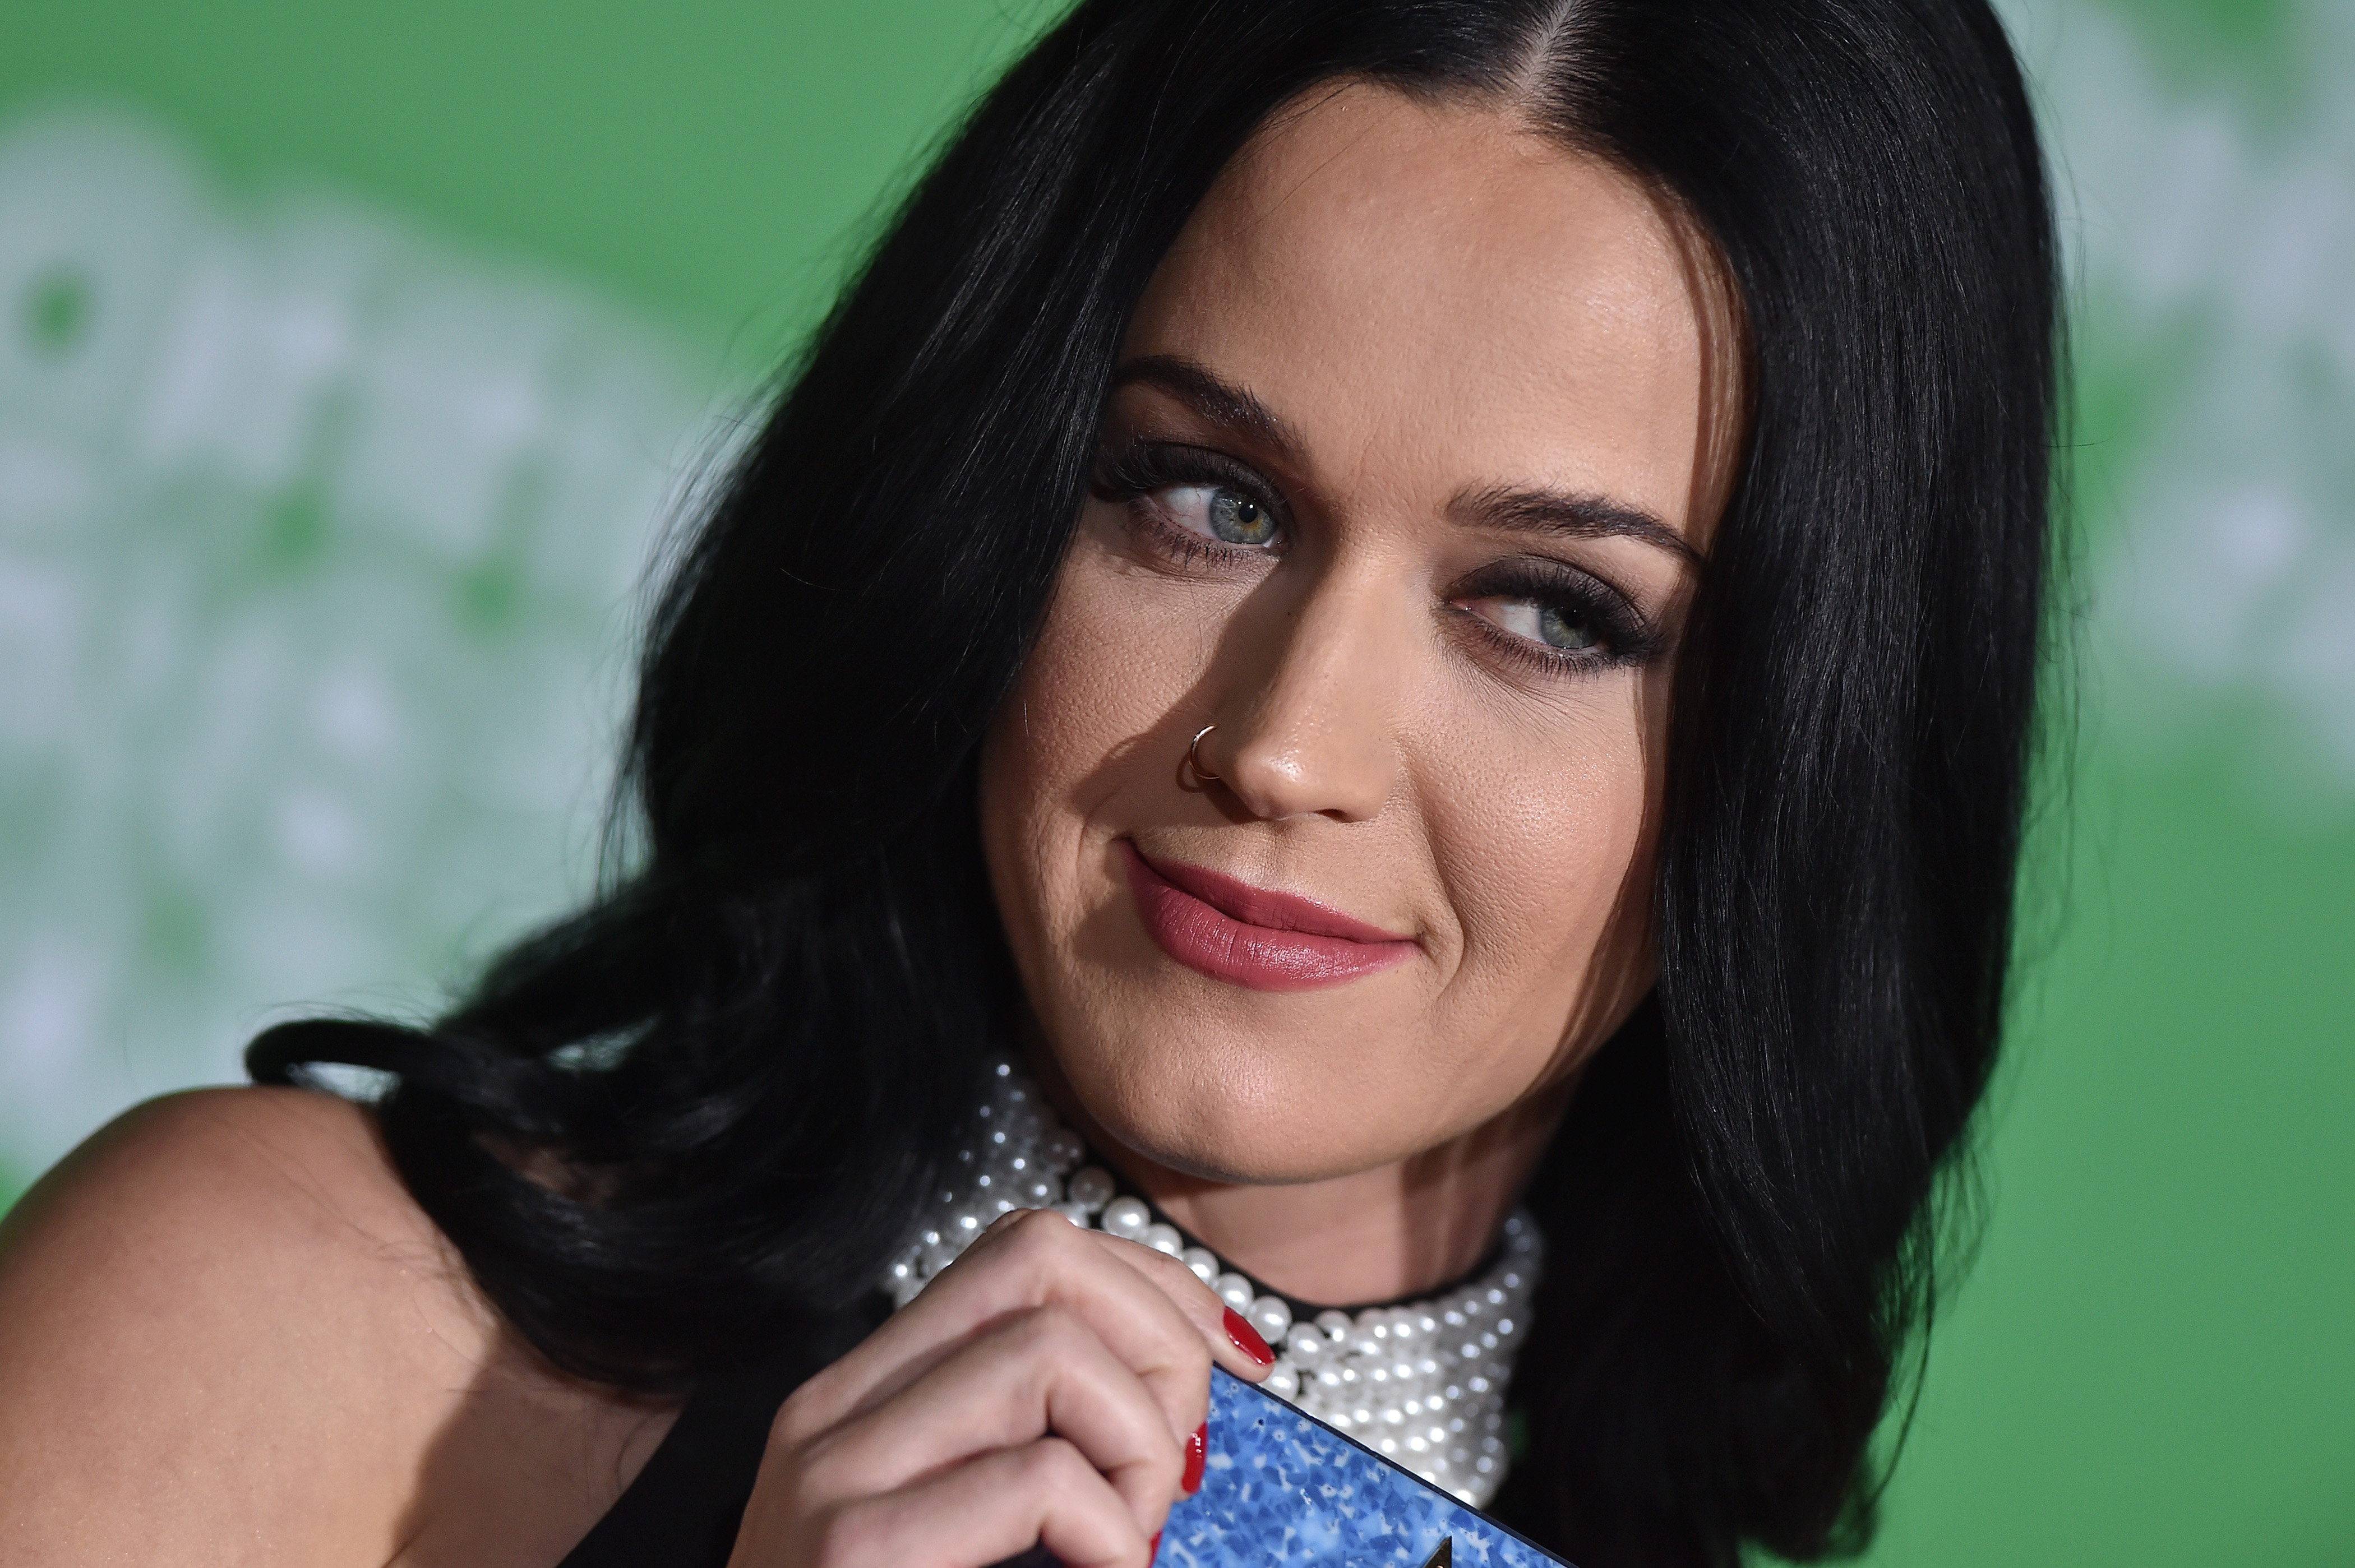 Katy Perry teases new single Chained To The Rhythm and it sounds like a disco banger